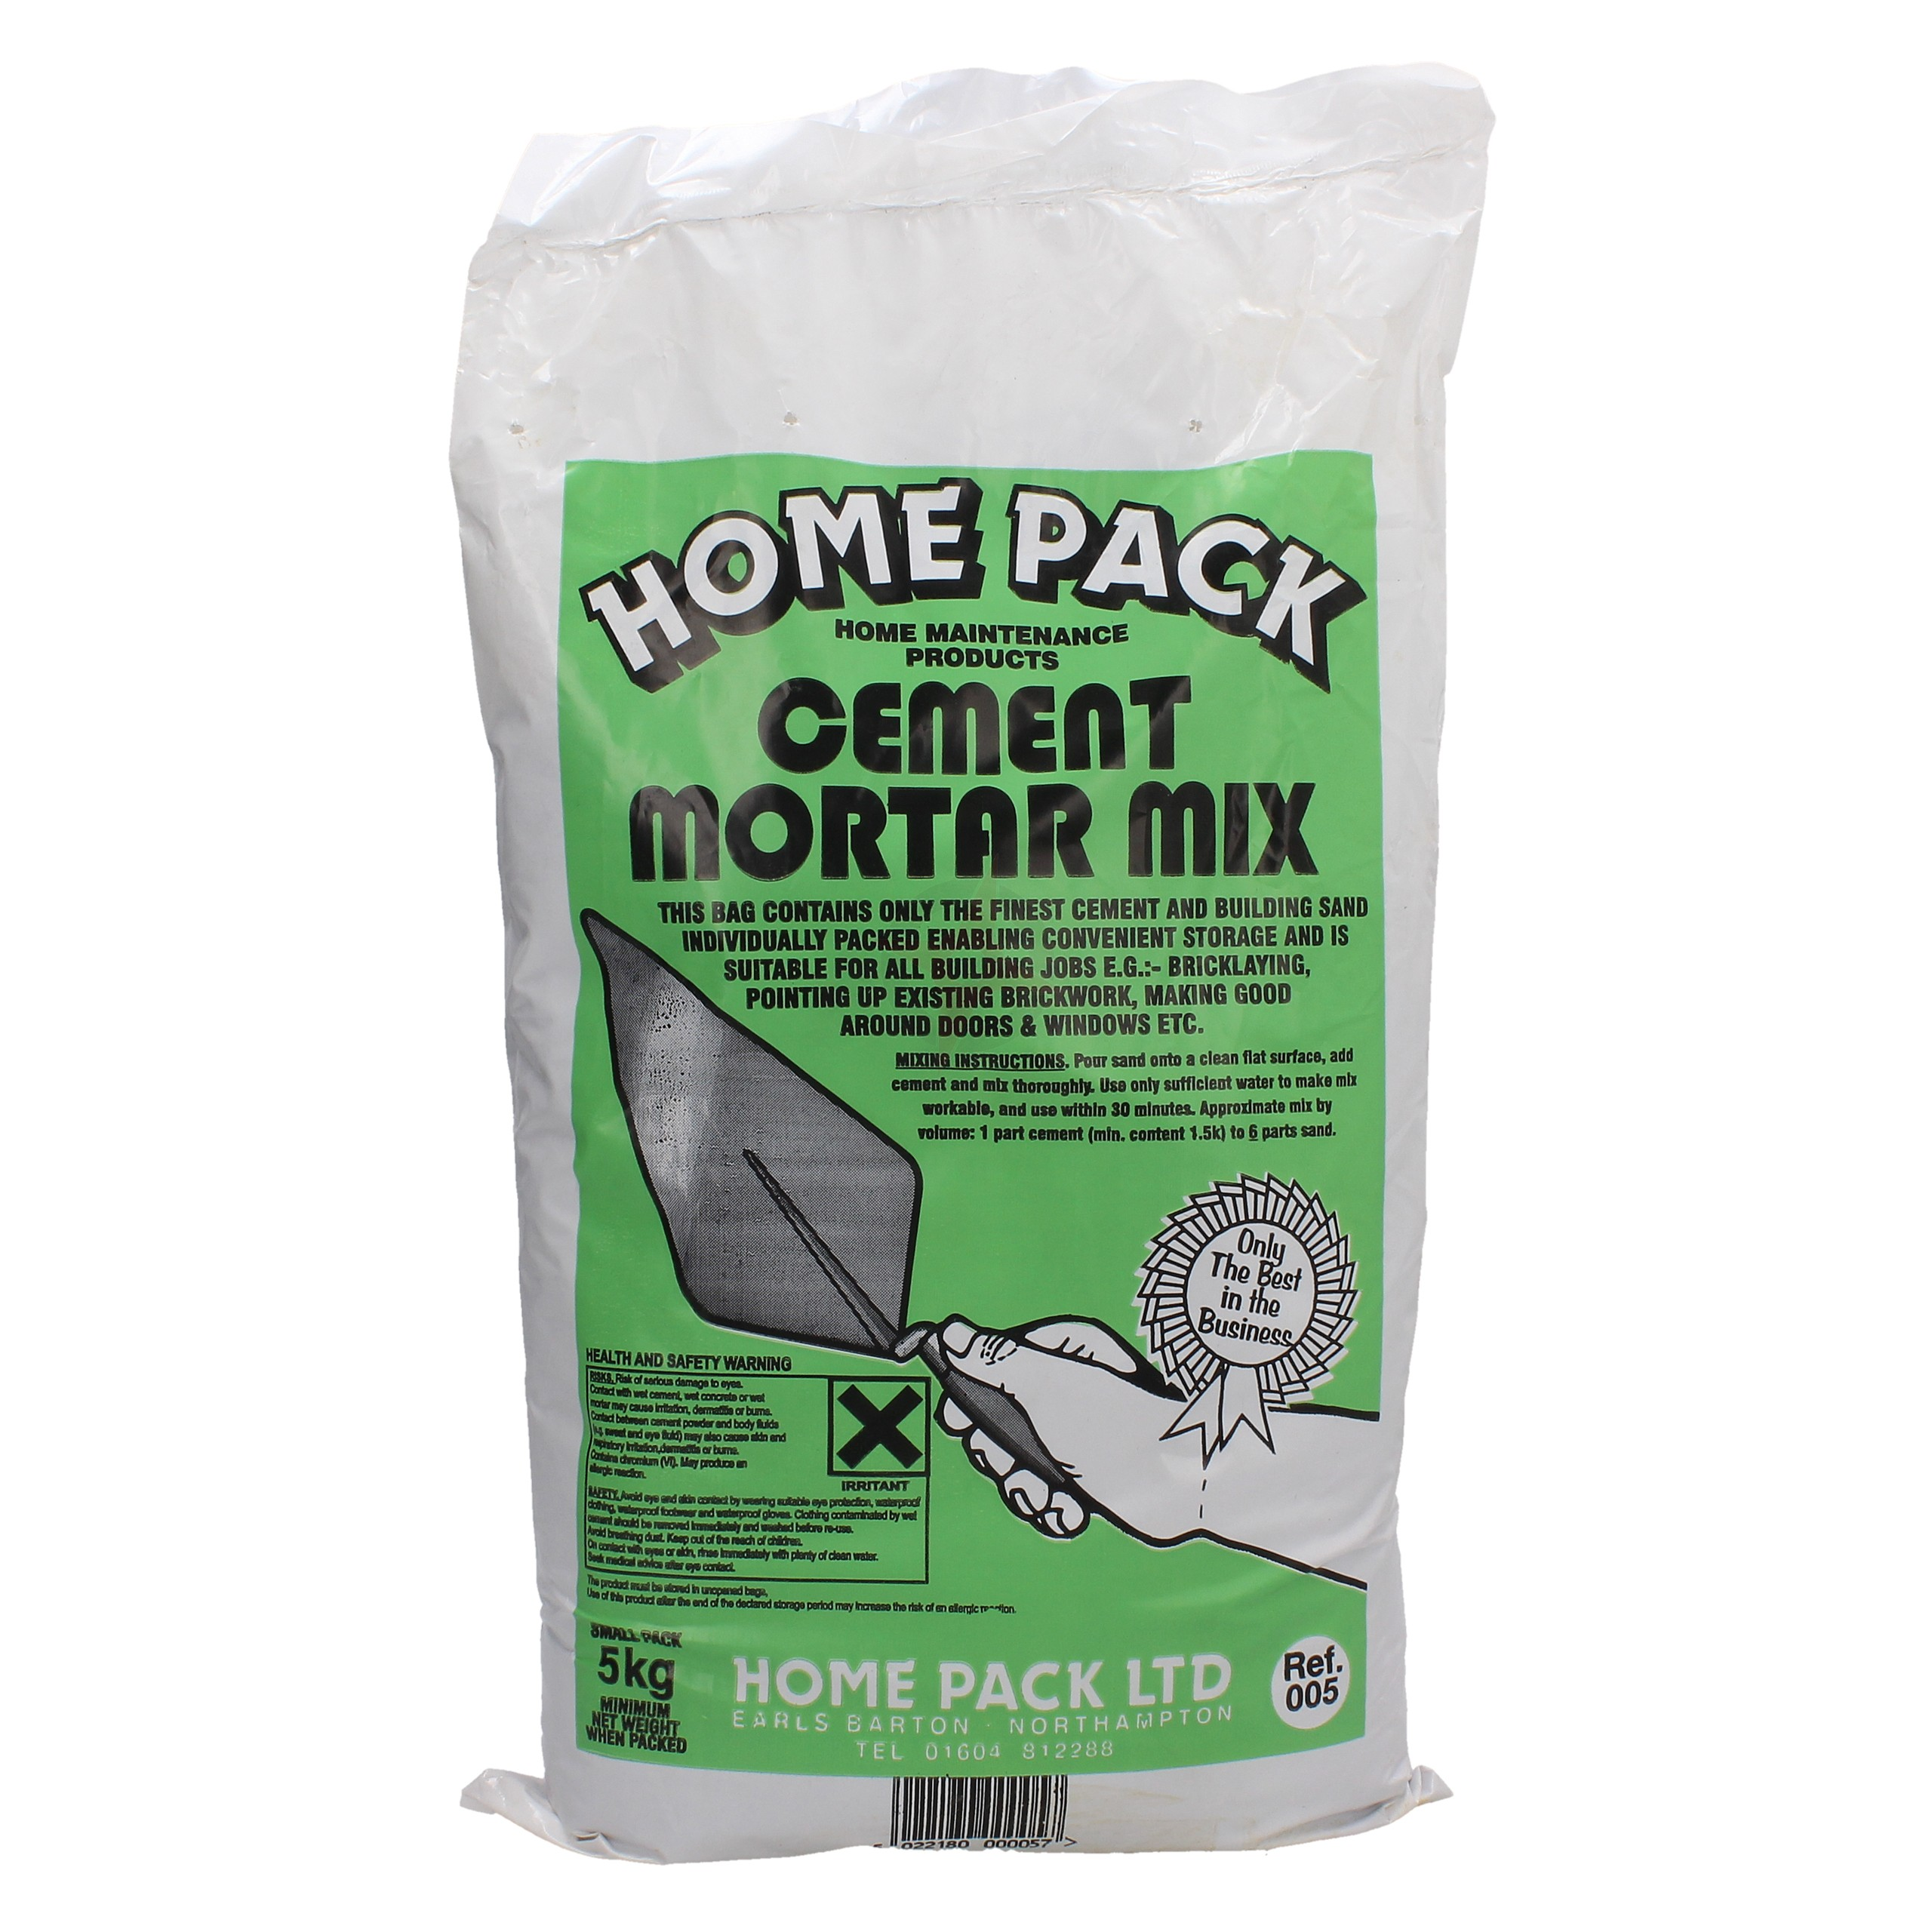 Home Pack 5kg Cement Mortar Mix